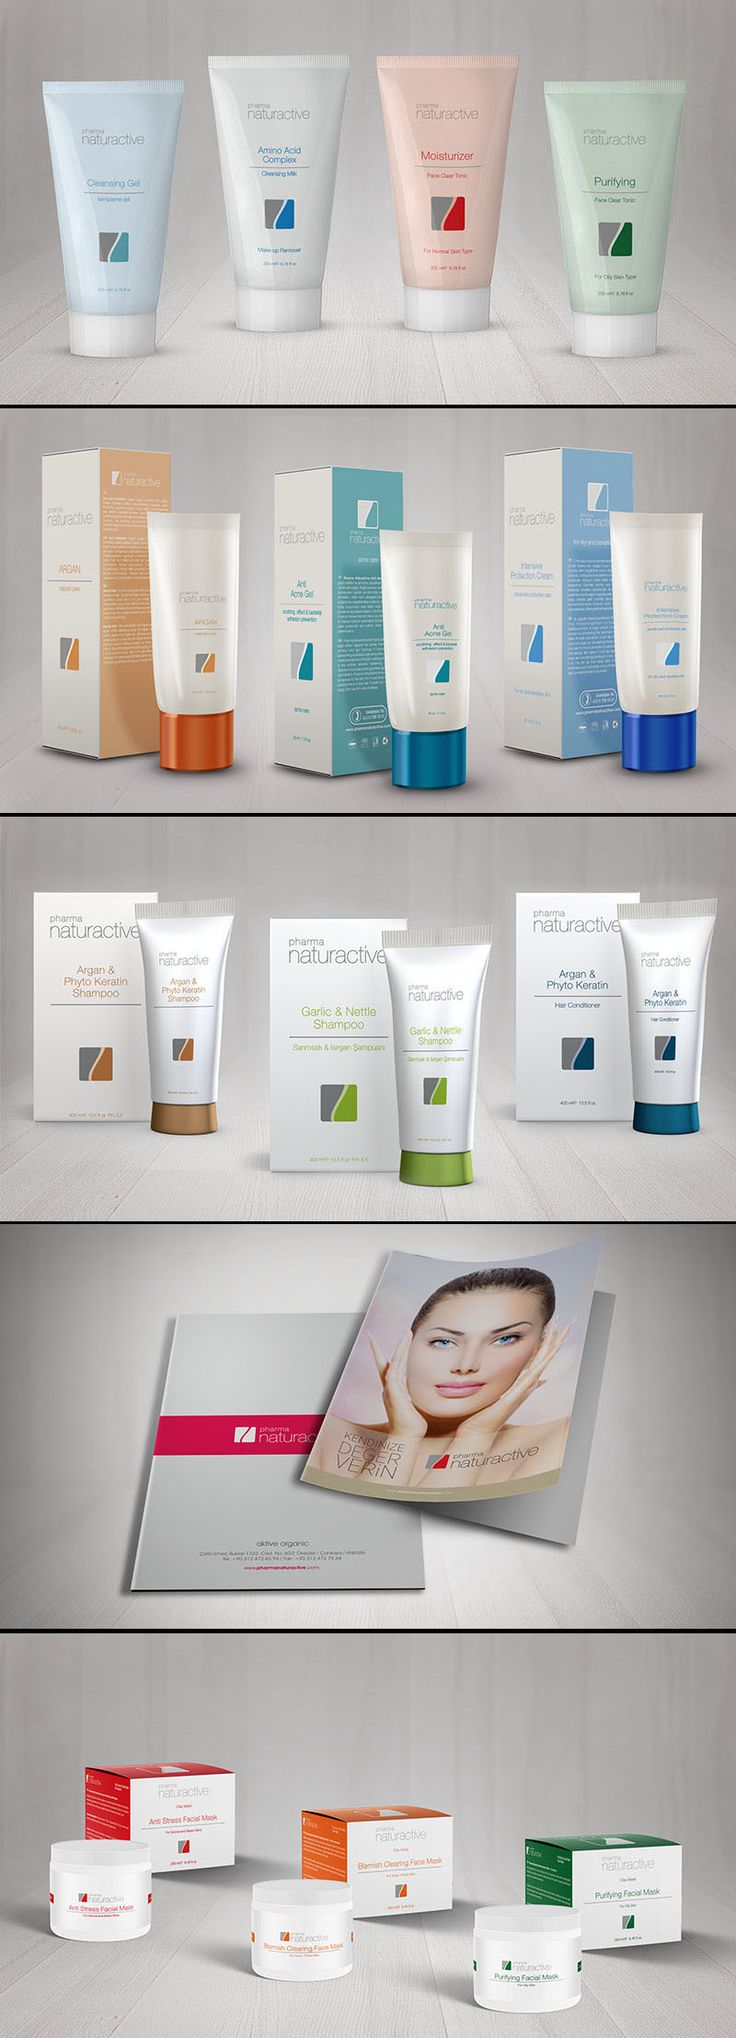 #pharma #naturactive #box #cosmetic #cream #concept #design